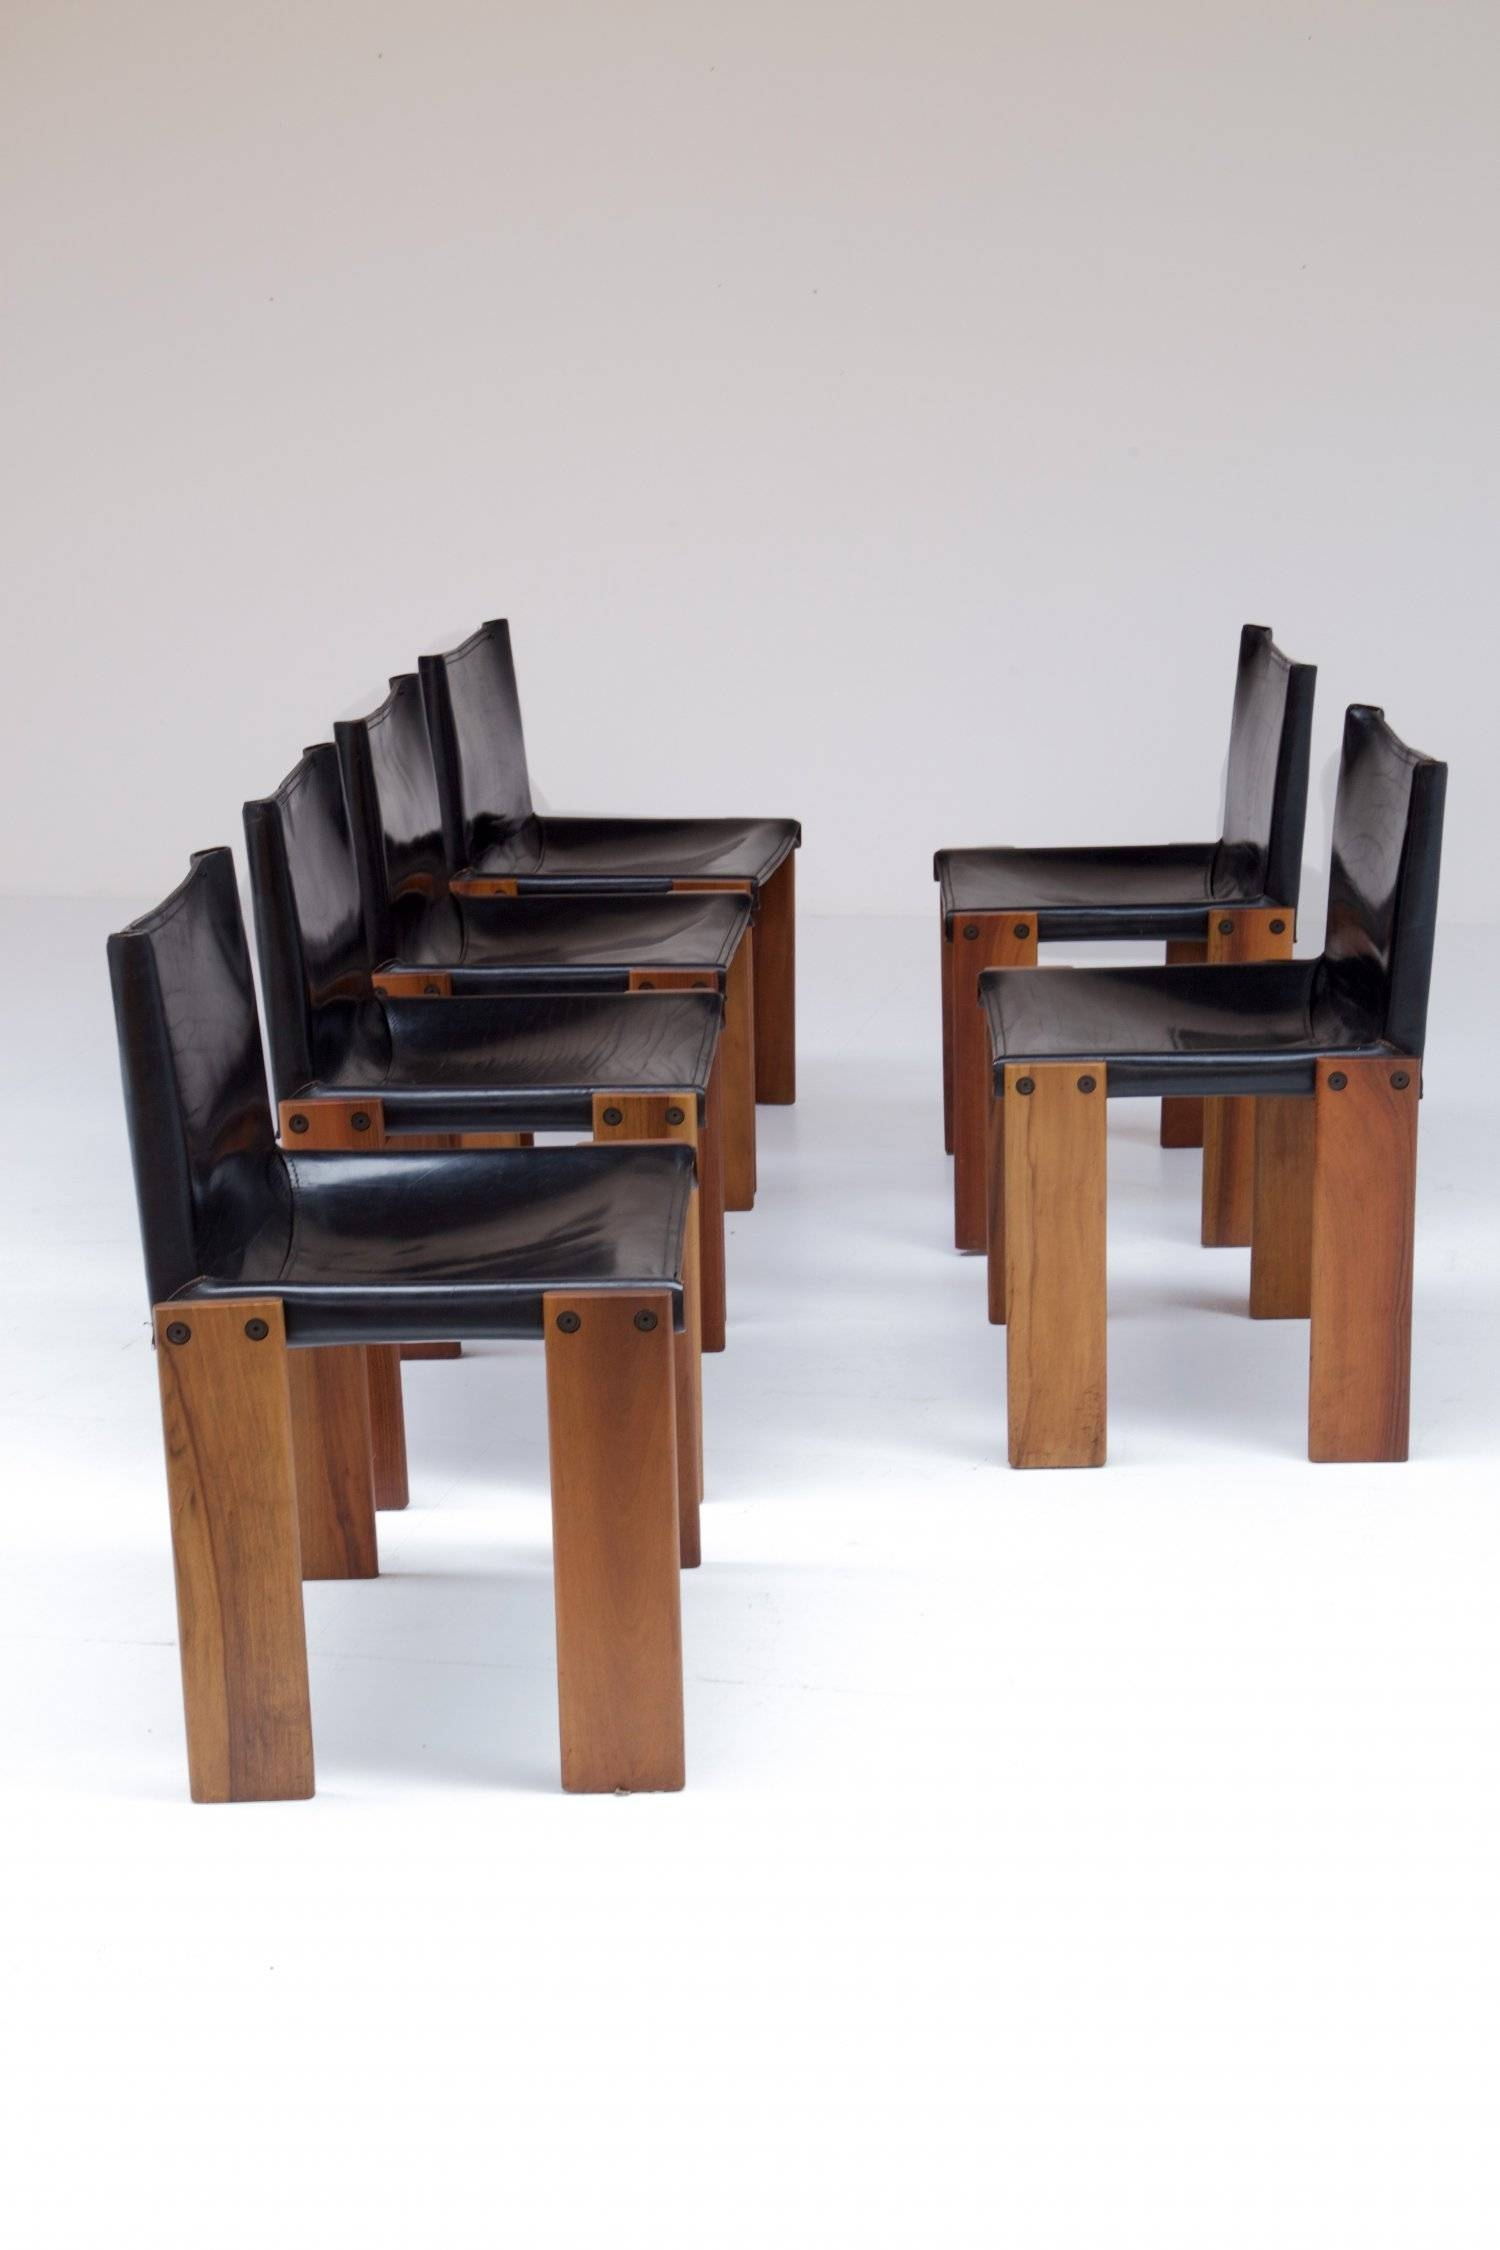 Monk Chairs Afra & Tobia Scarpa - Vanlandschoote pertaining to Monk Chairs (Image 20 of 30)